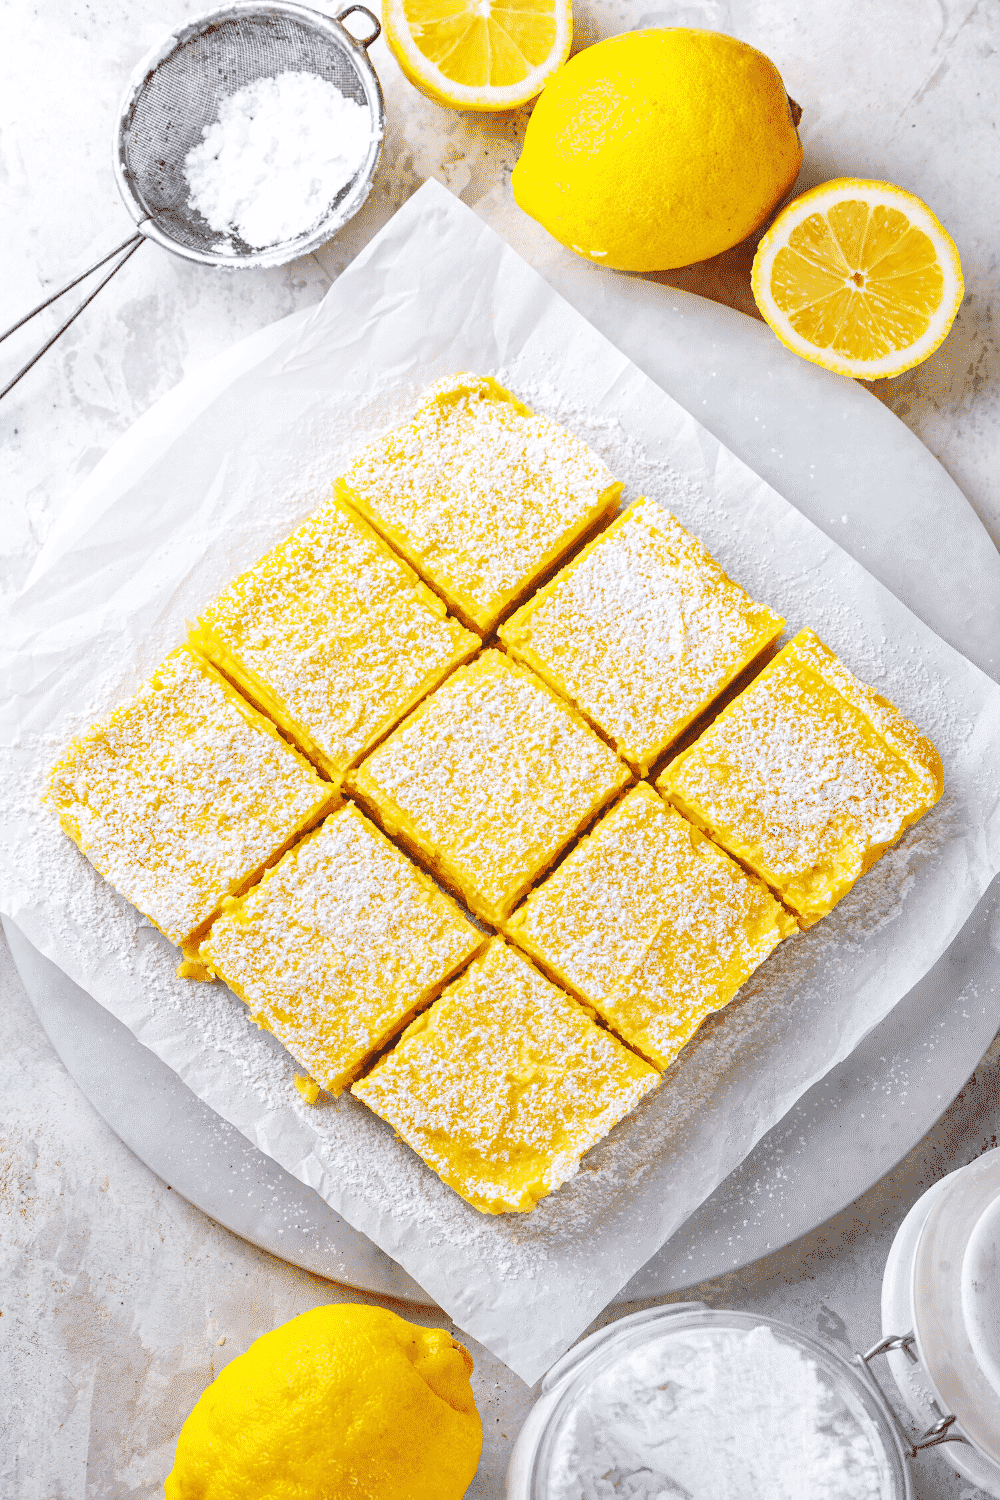 And overhead view of three rows of three lemon bar squares. The lemon bars are on a piece of white parchment paper and they are covered in powdered sugar.